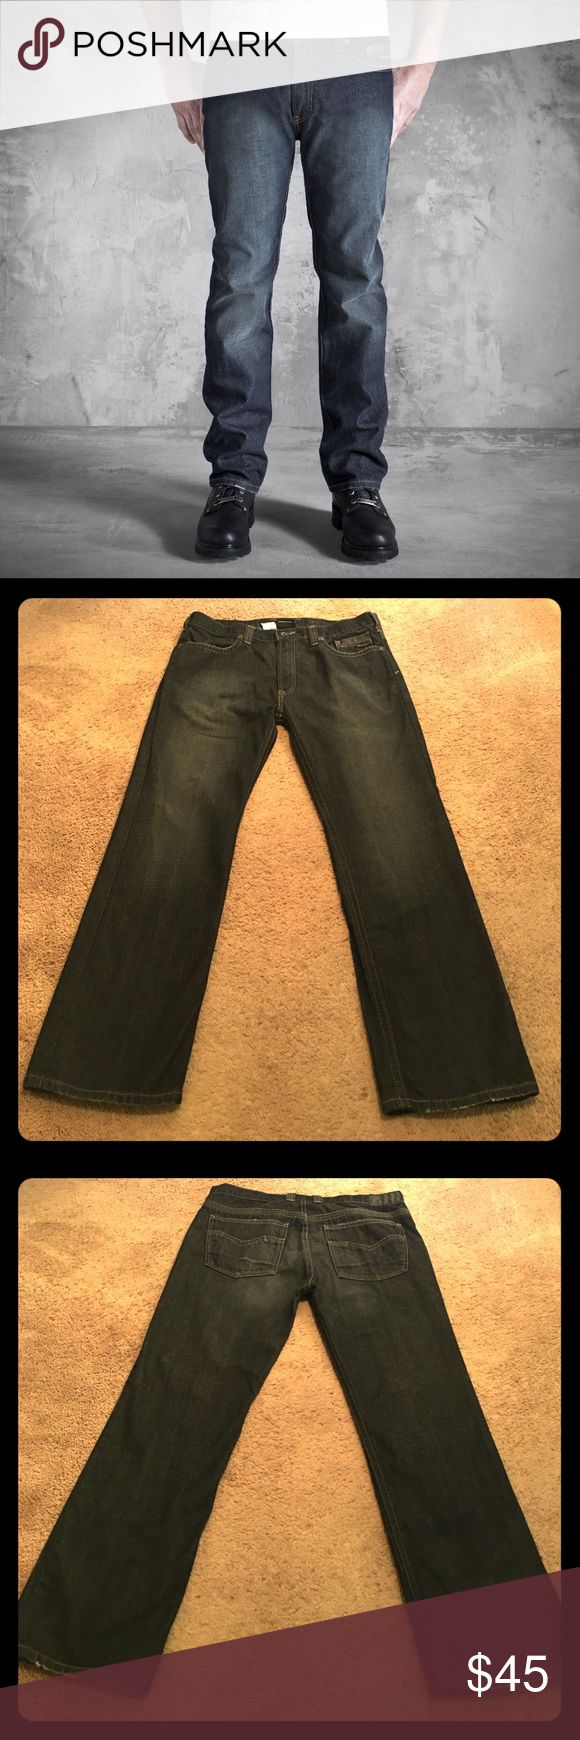 ⚡FLASH SALE⚡NWOT Harley-Davidson Black Label jeans NWOT genuine Harley-Davidson high end black label jeans. These are a slim straight leg fit with a dark indigo slightly worn look to the wash. Men's size 34X30. Bought just before friend lost a ton of weight and never worn! Selling for friend so cannot negotiate as much. Harley-Davidson Jeans Slim Straight